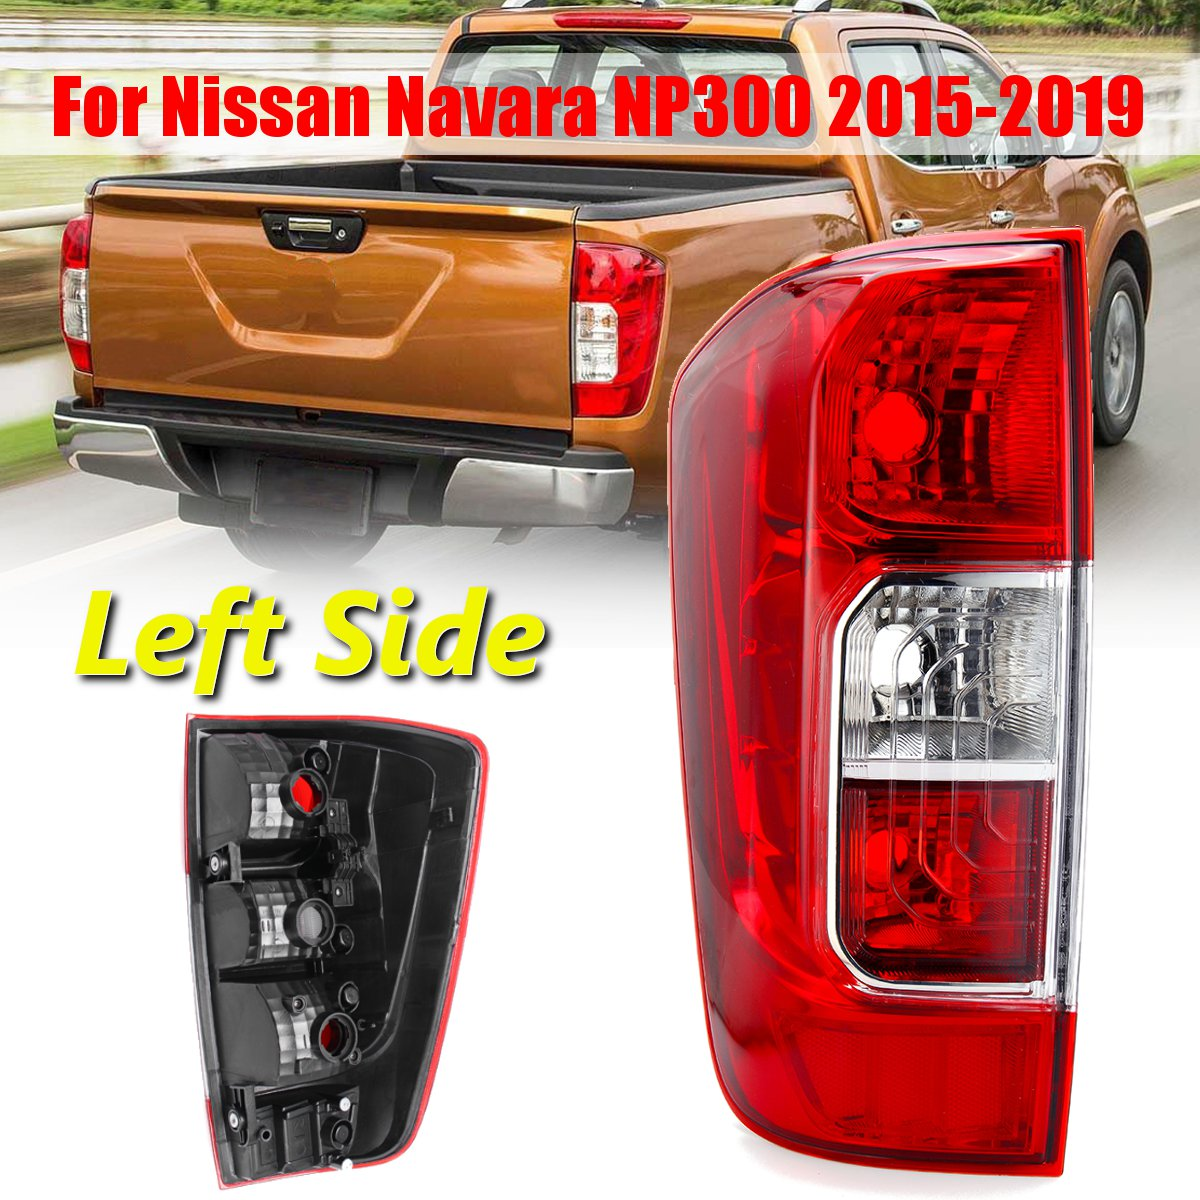 Car Rear Tail Light Red Wire Left/Right for Nissan Navara NP300 2015-2019 Frontier 2018-2019 without Bulbs Wire Car Light AssemCar Rear Tail Light Red Wire Left/Right for Nissan Navara NP300 2015-2019 Frontier 2018-2019 without Bulbs Wire Car Light Assem